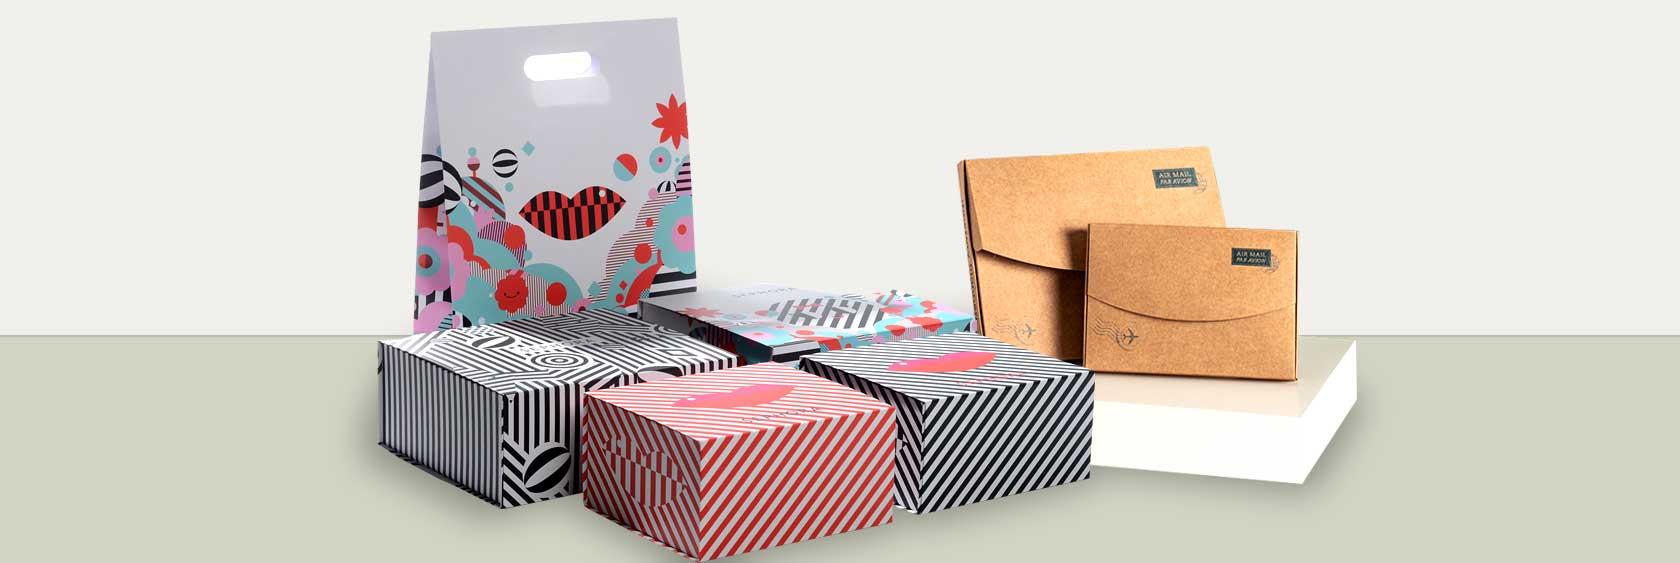 Custom Made Boxes Wholesale,Custom Made Boxes,Custom Boxes Wholesale, Made Boxes ,Custom Wholesale Boxes